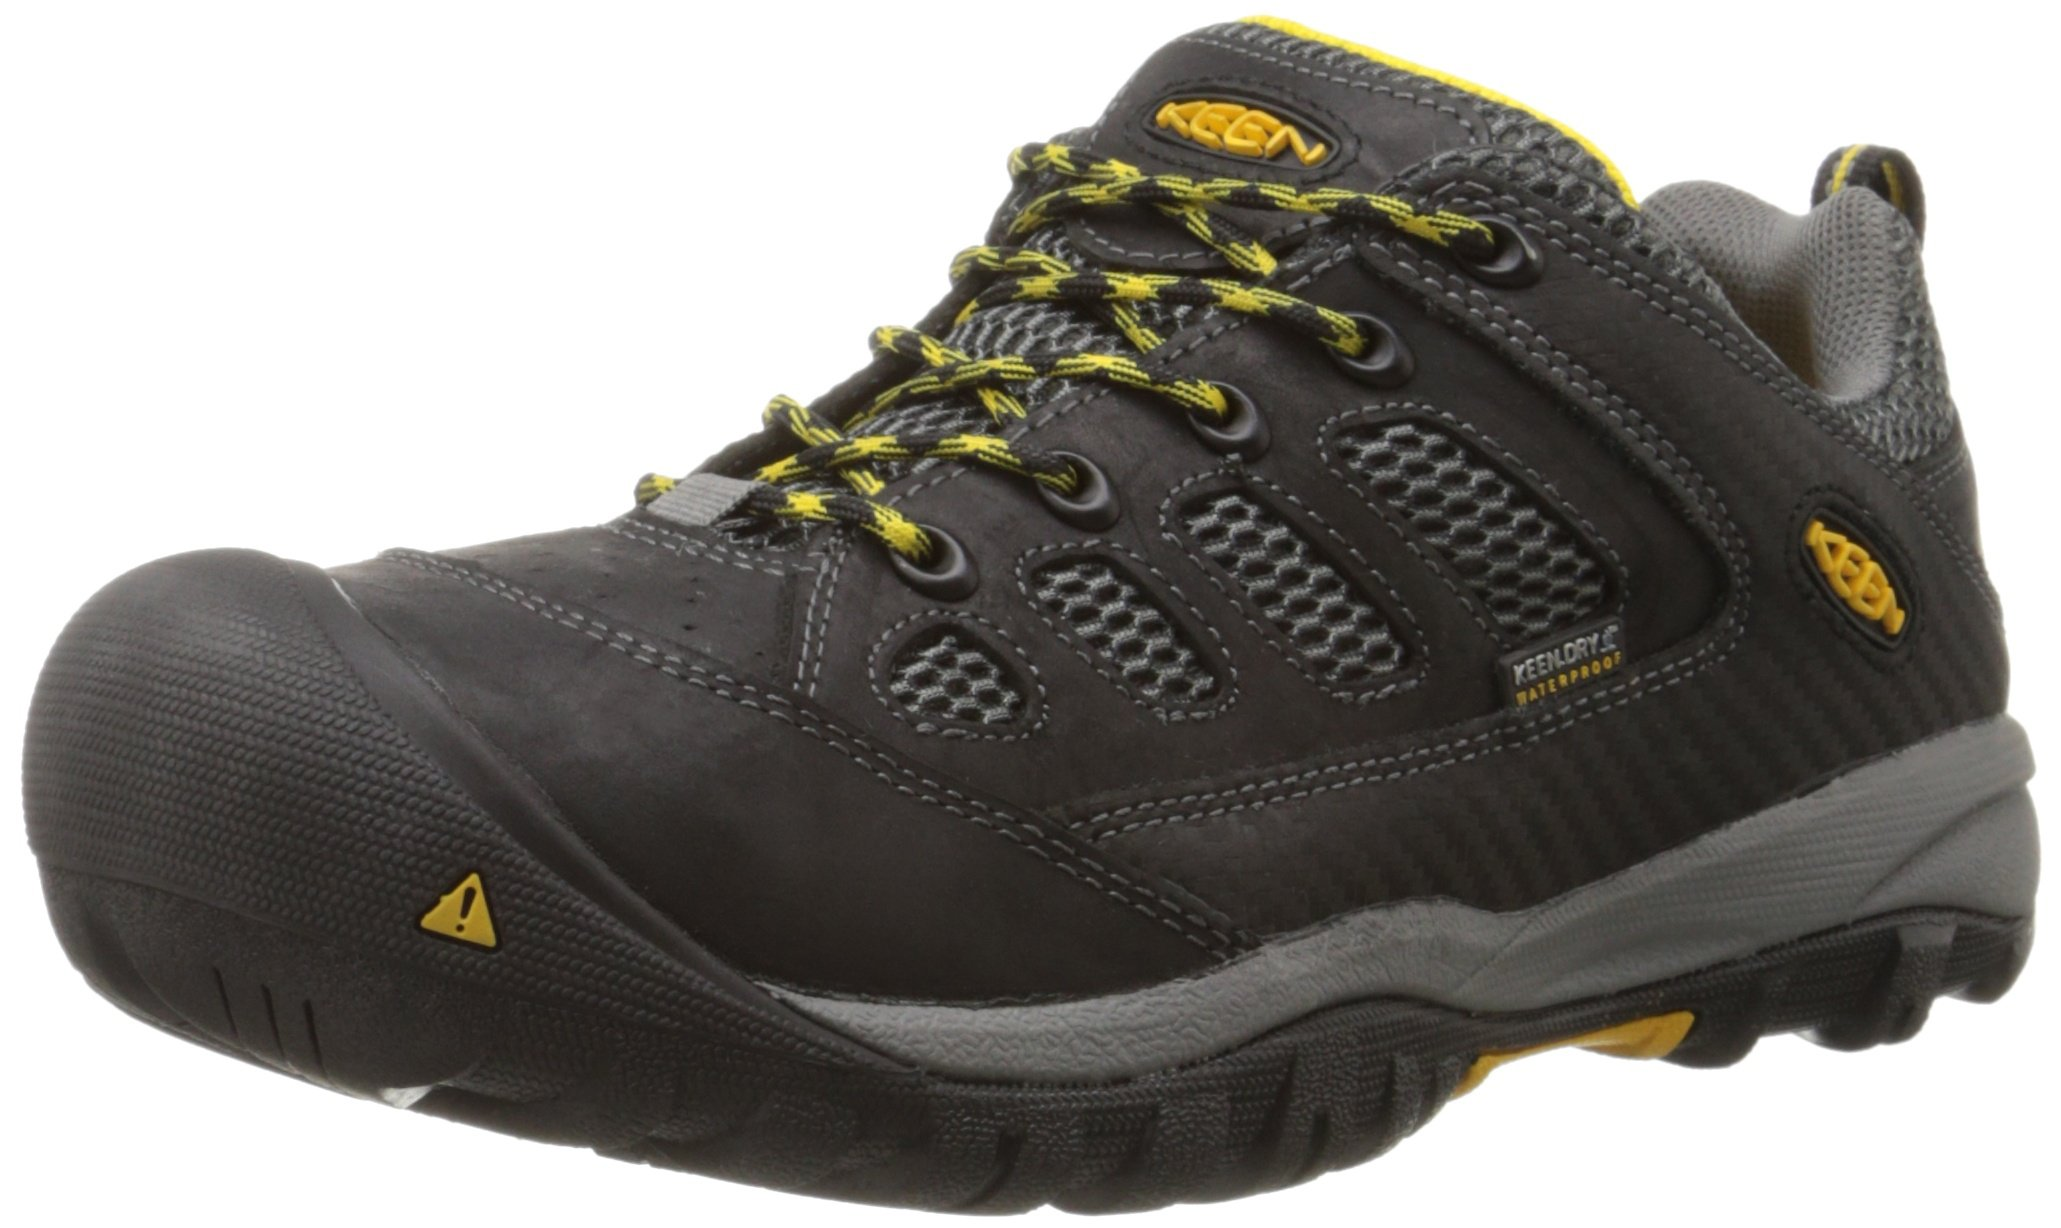 KEEN Utility Men's Tucson Low M Work Boot, Black/Gargoyle, 9.5 2E US